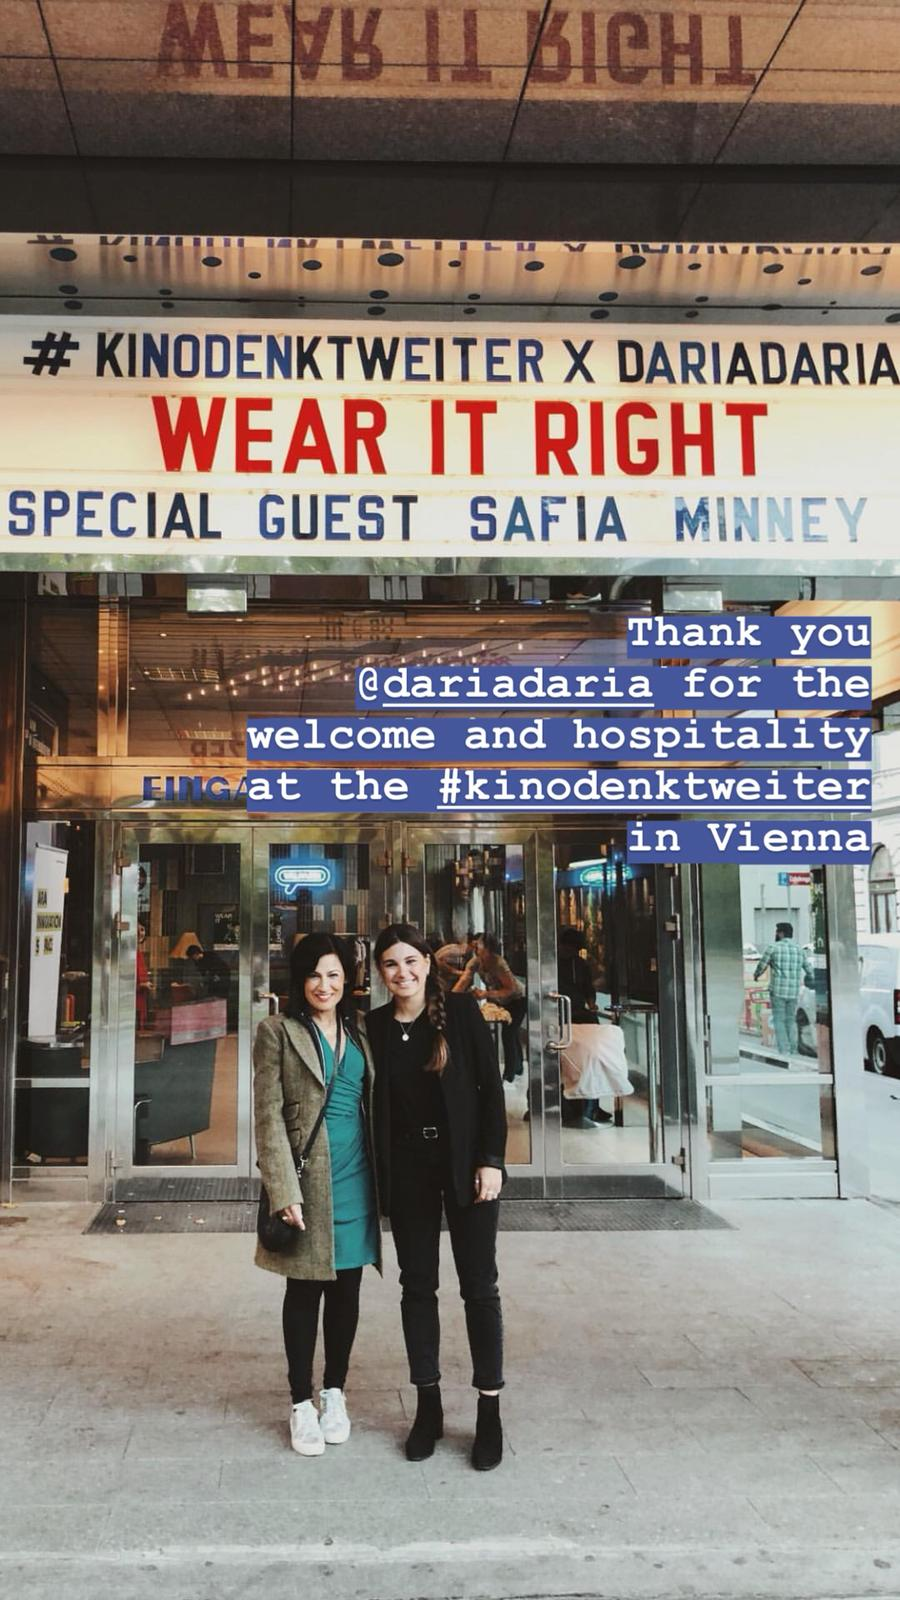 Safia Minney and DariaDaria